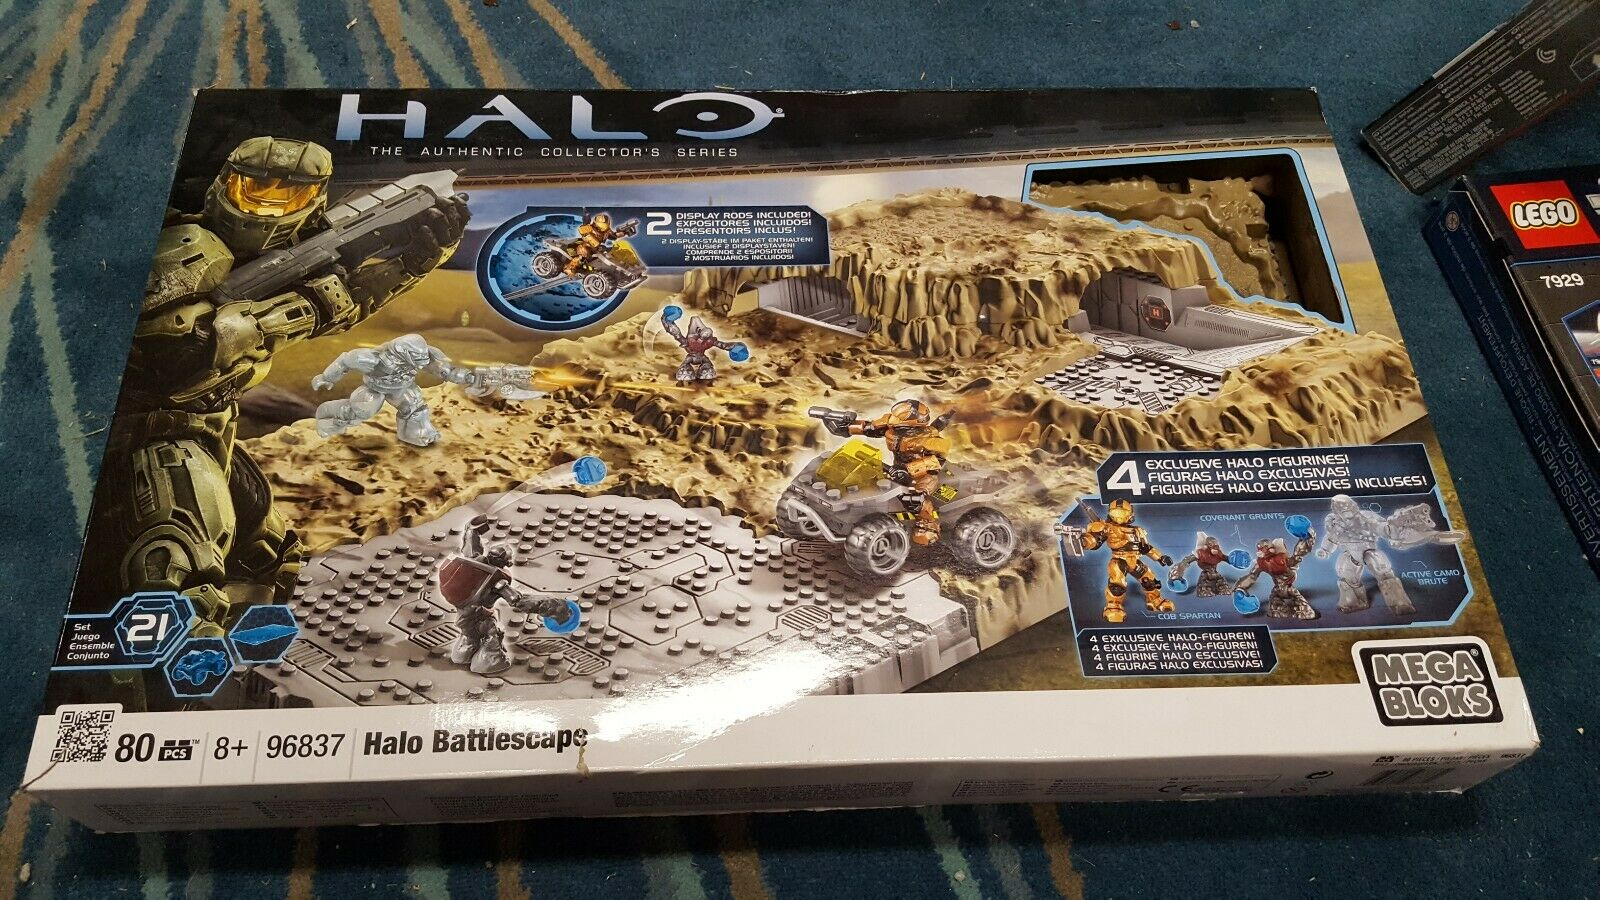 Halo mega Blok kit 96837